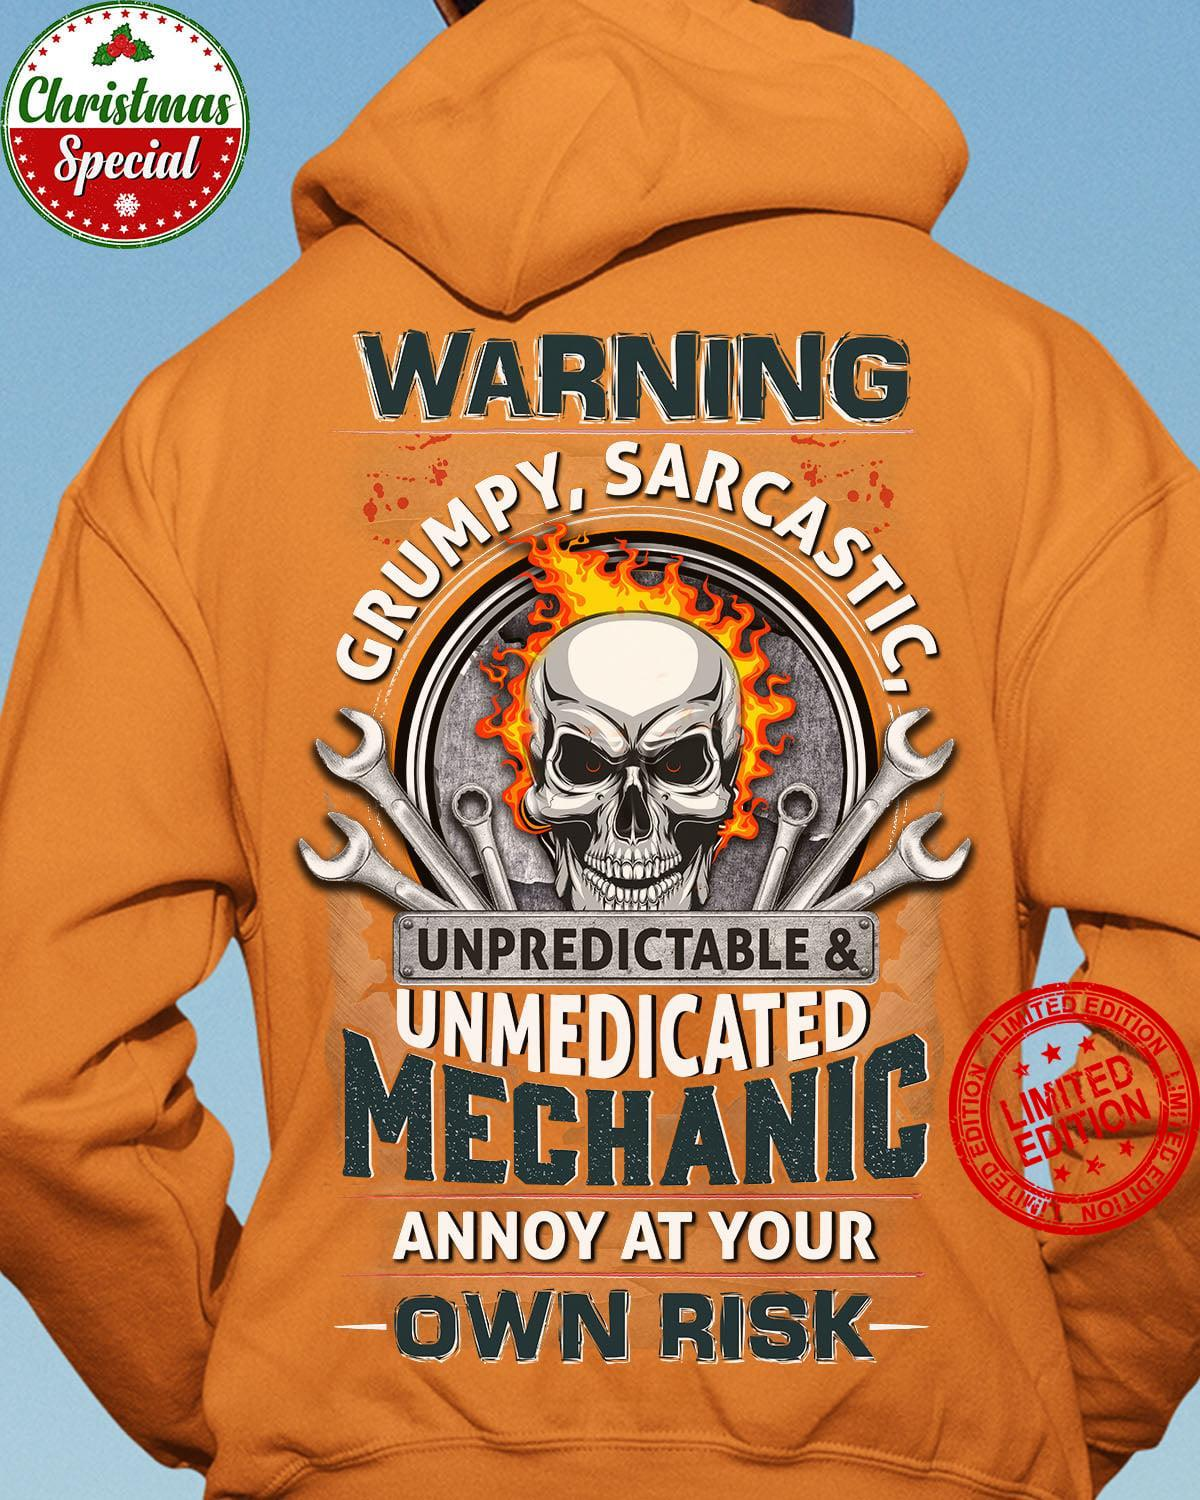 Warning Grumpy Sarcastic Unpredictable & Unmedicated Mechanic Annoy At Your Own Risk Shirt